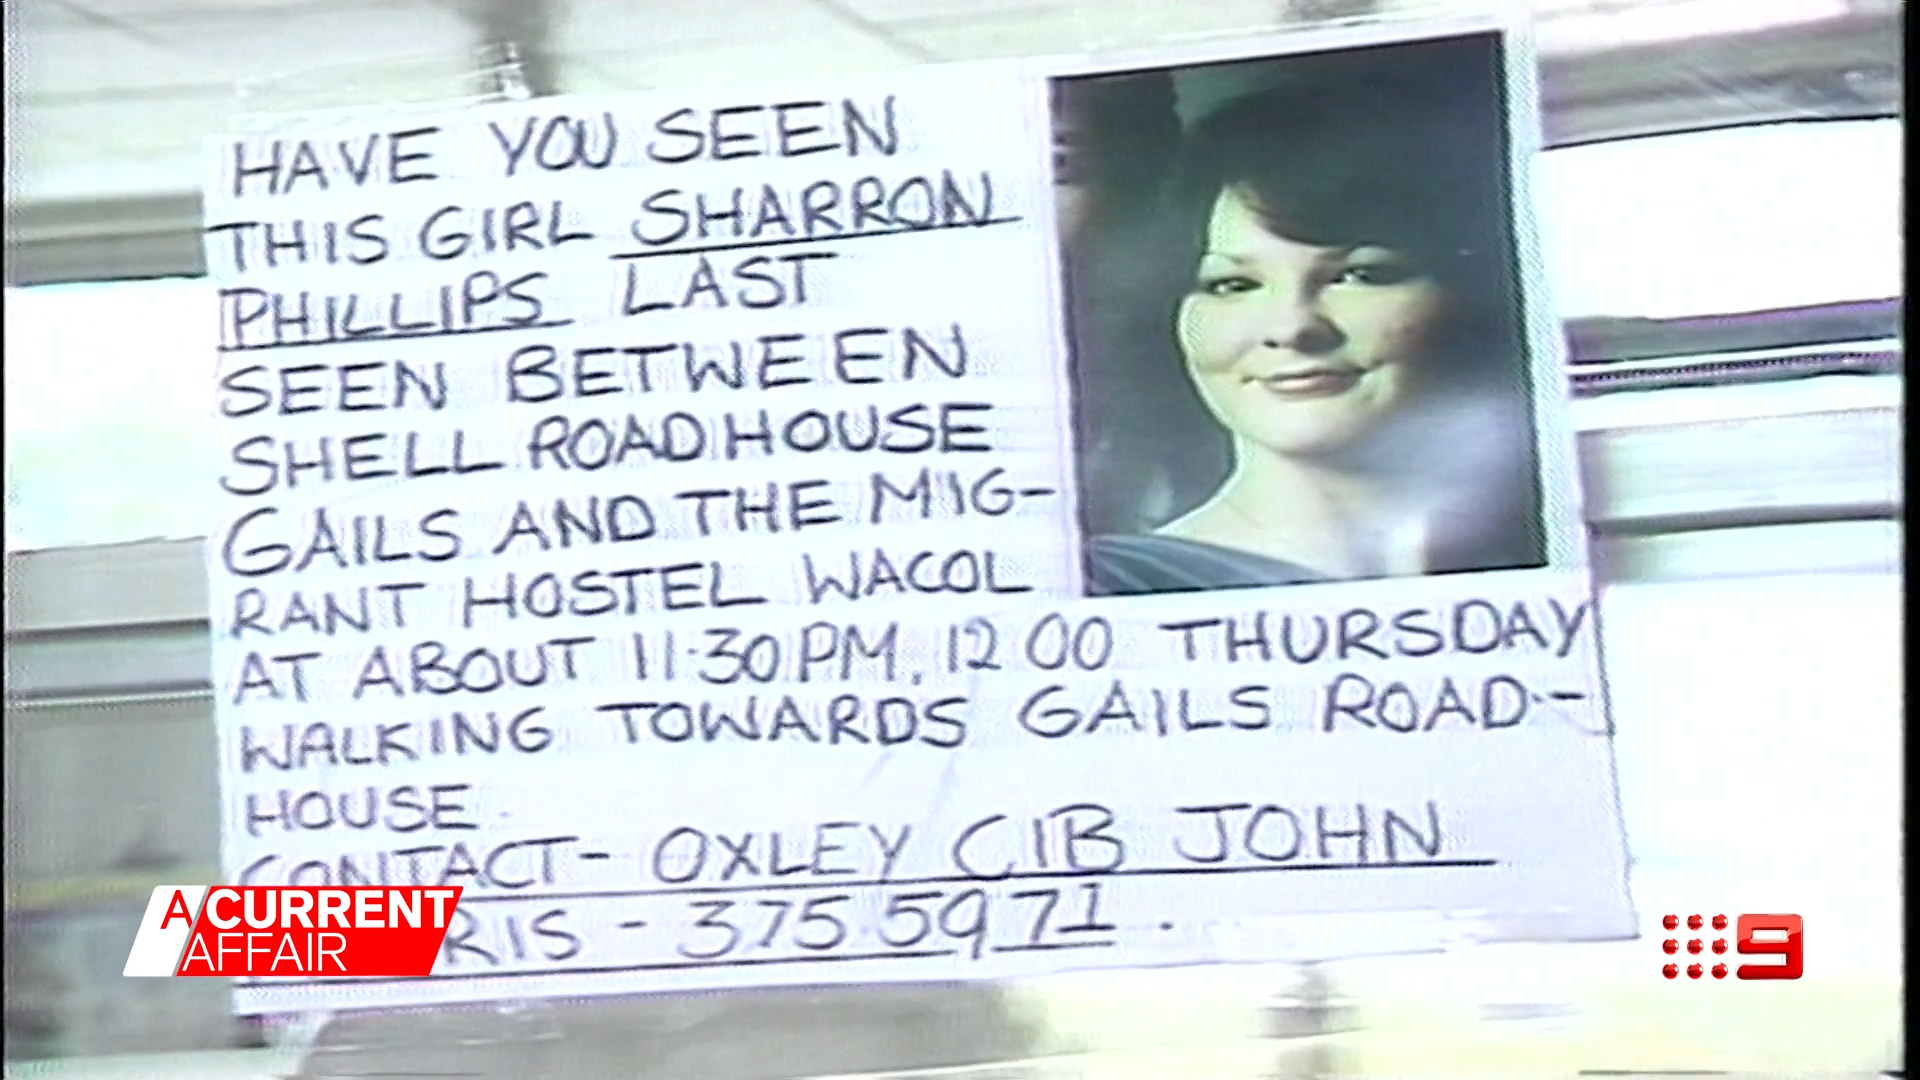 One person alive could know who killed Sharron Phillips